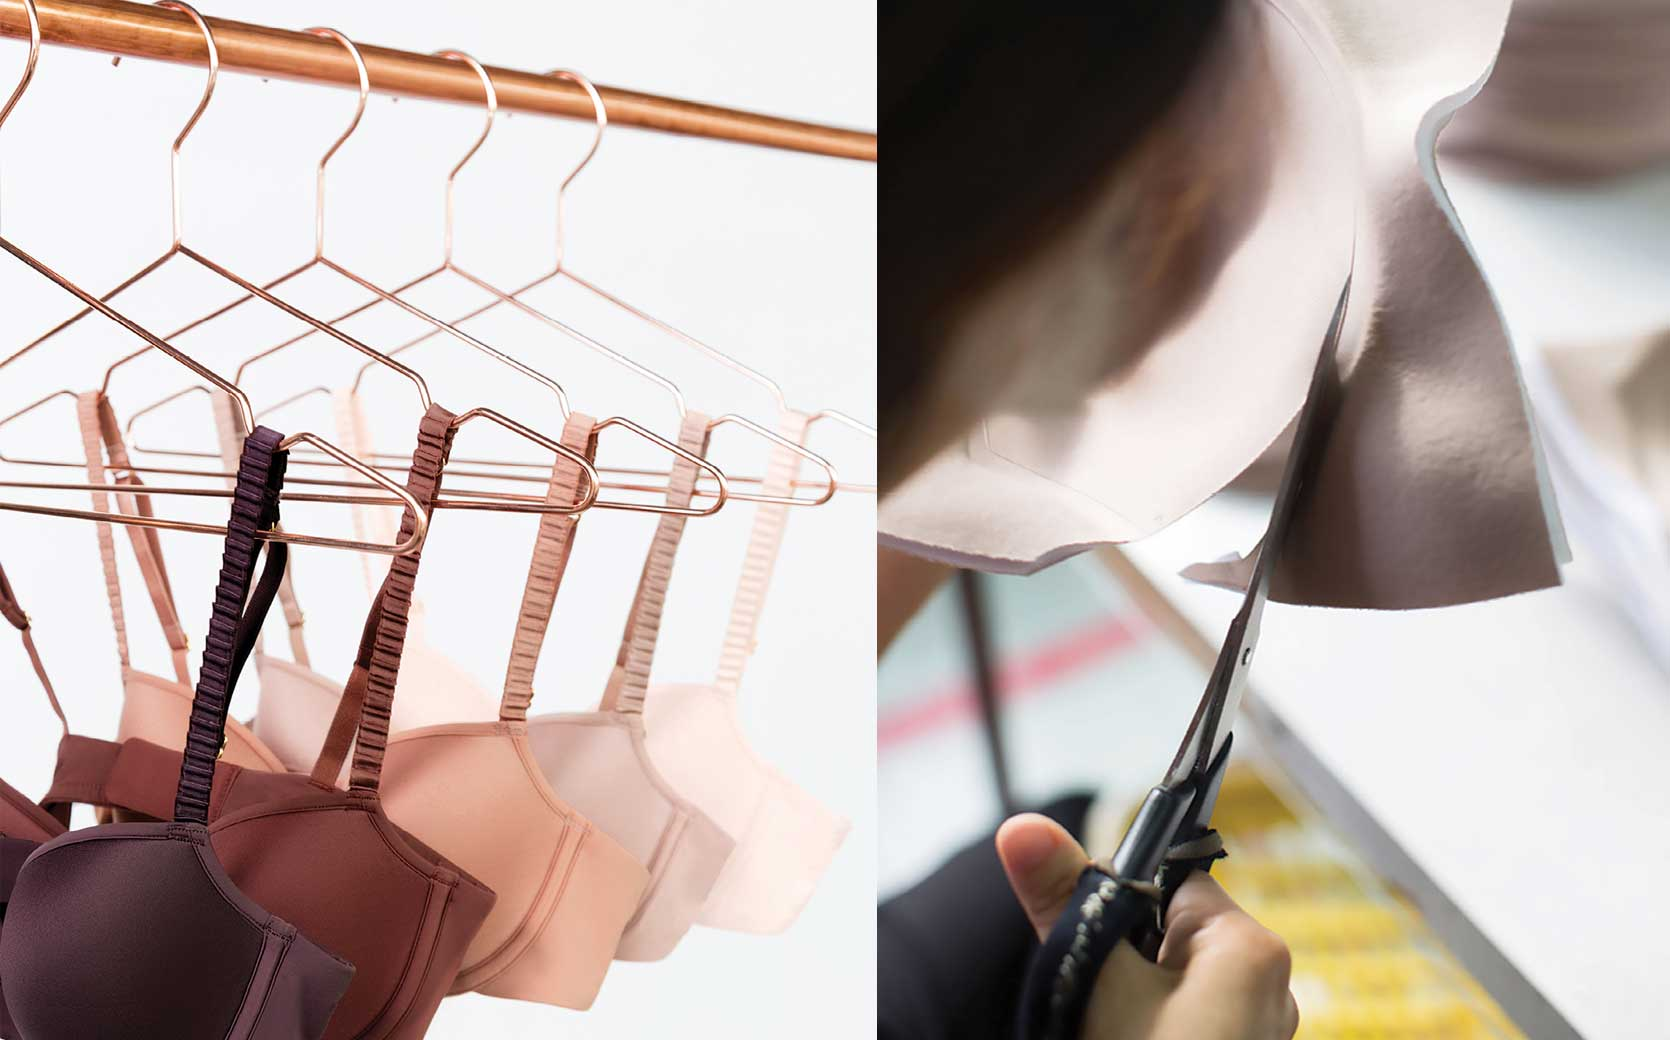 Bras hang on hangers in a closet, and a bra being made by hand